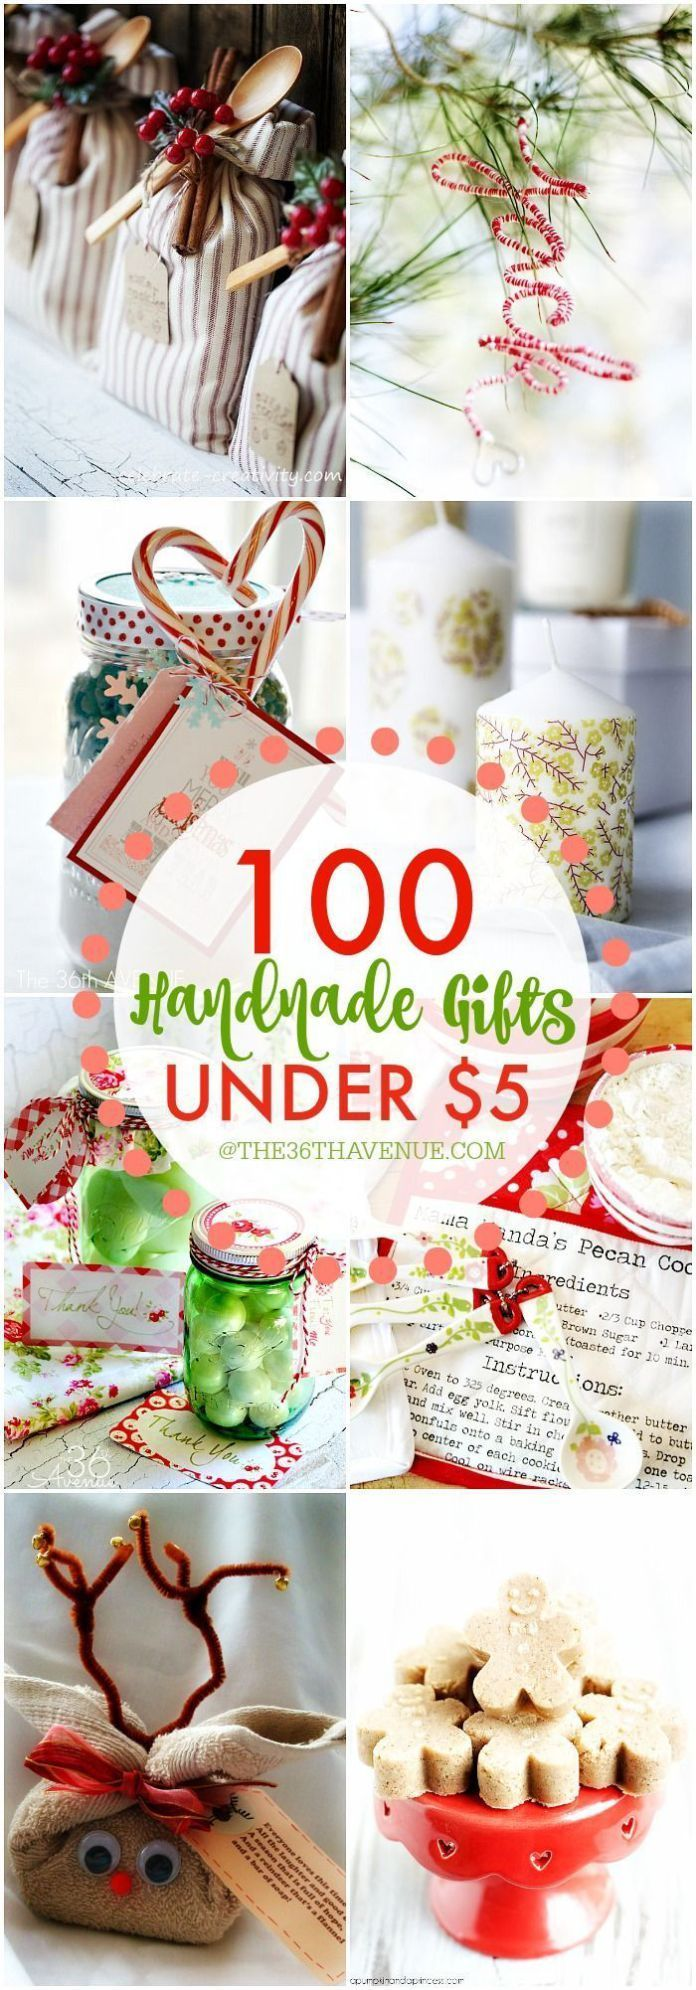 Diy Crafts Ideas : Over 100 Handmade Gifts that are perfect for Christmas gifts birthday presents